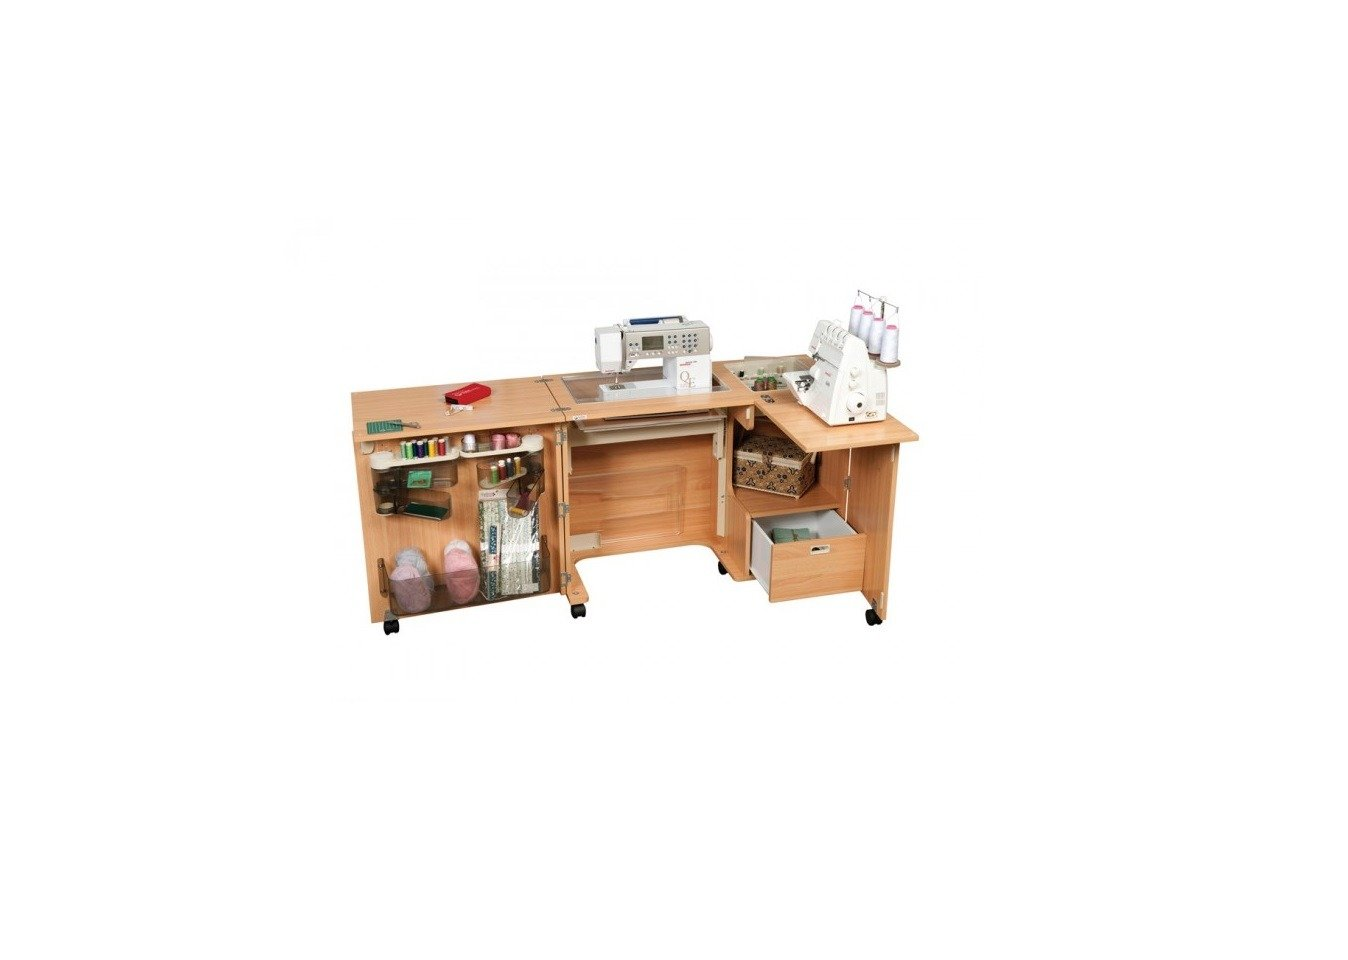 Monarch MK III Blackmore and Roy Sewing Machine Specialists Perth WA cabinet desk domestic industrial repairs thread spools best